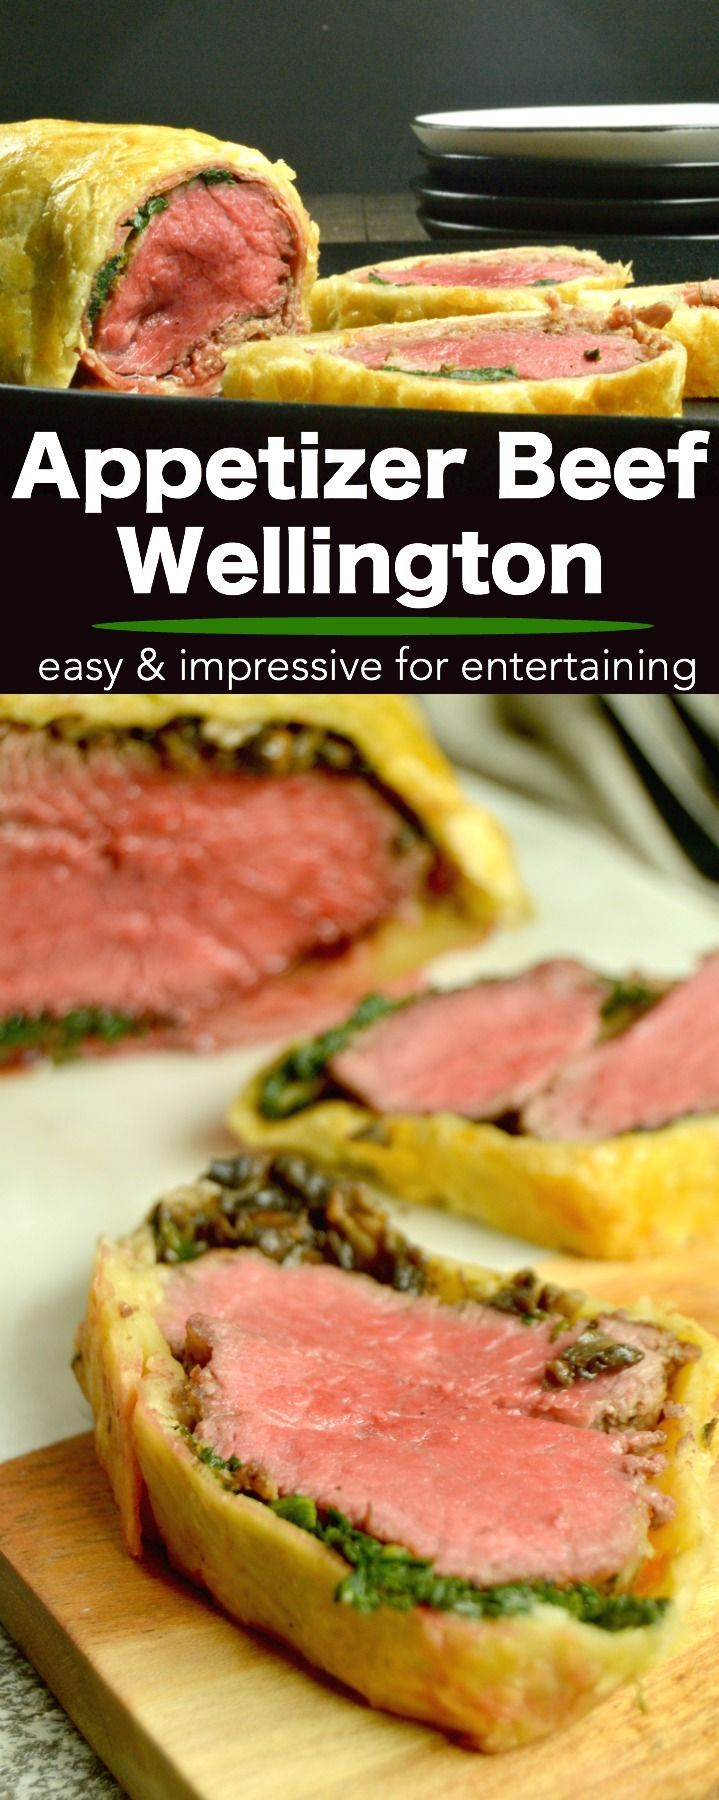 Beef Wellington Appetizers: Tender steak smothered in mushroom pate wrapped in prosciutto then surrounded by Puff Pastry that is baked to light and flaky deliciousness. Perfect for all special occasion entertaining this holiday season, but easy enough to have just because they are delicious! #appetizers #holidayfood #entertaining #comfortfood #AD #InspiredByPuff via @westviamidwest